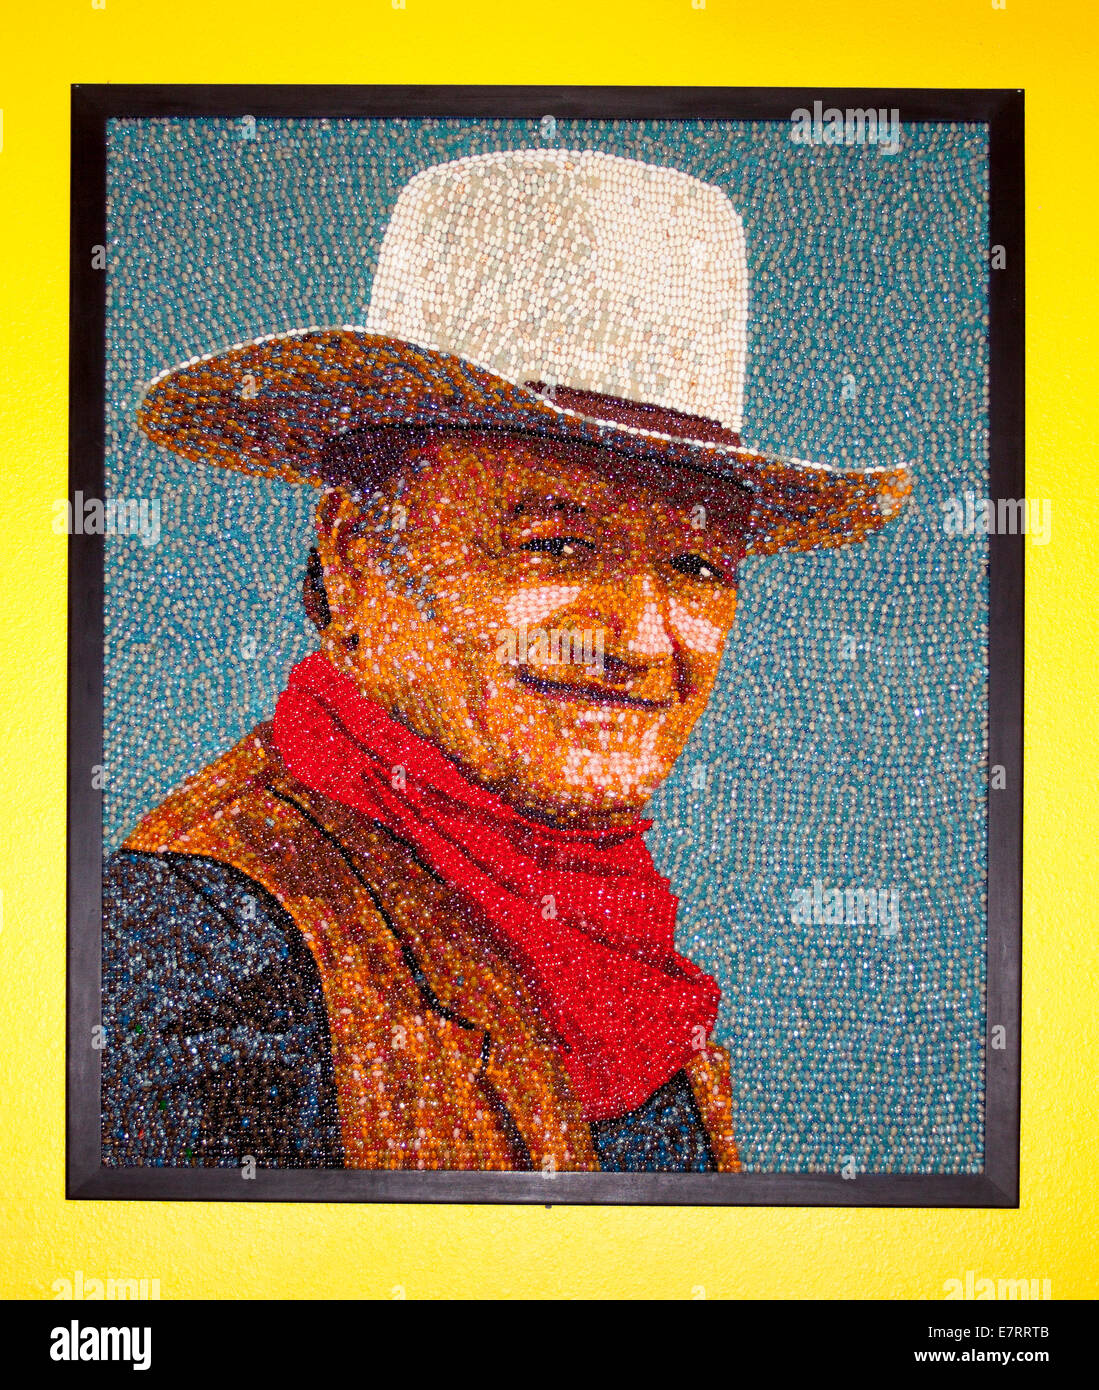 John Wayne portrait at the Jelly Belly Factory Museum in Fairfield California - Stock Image